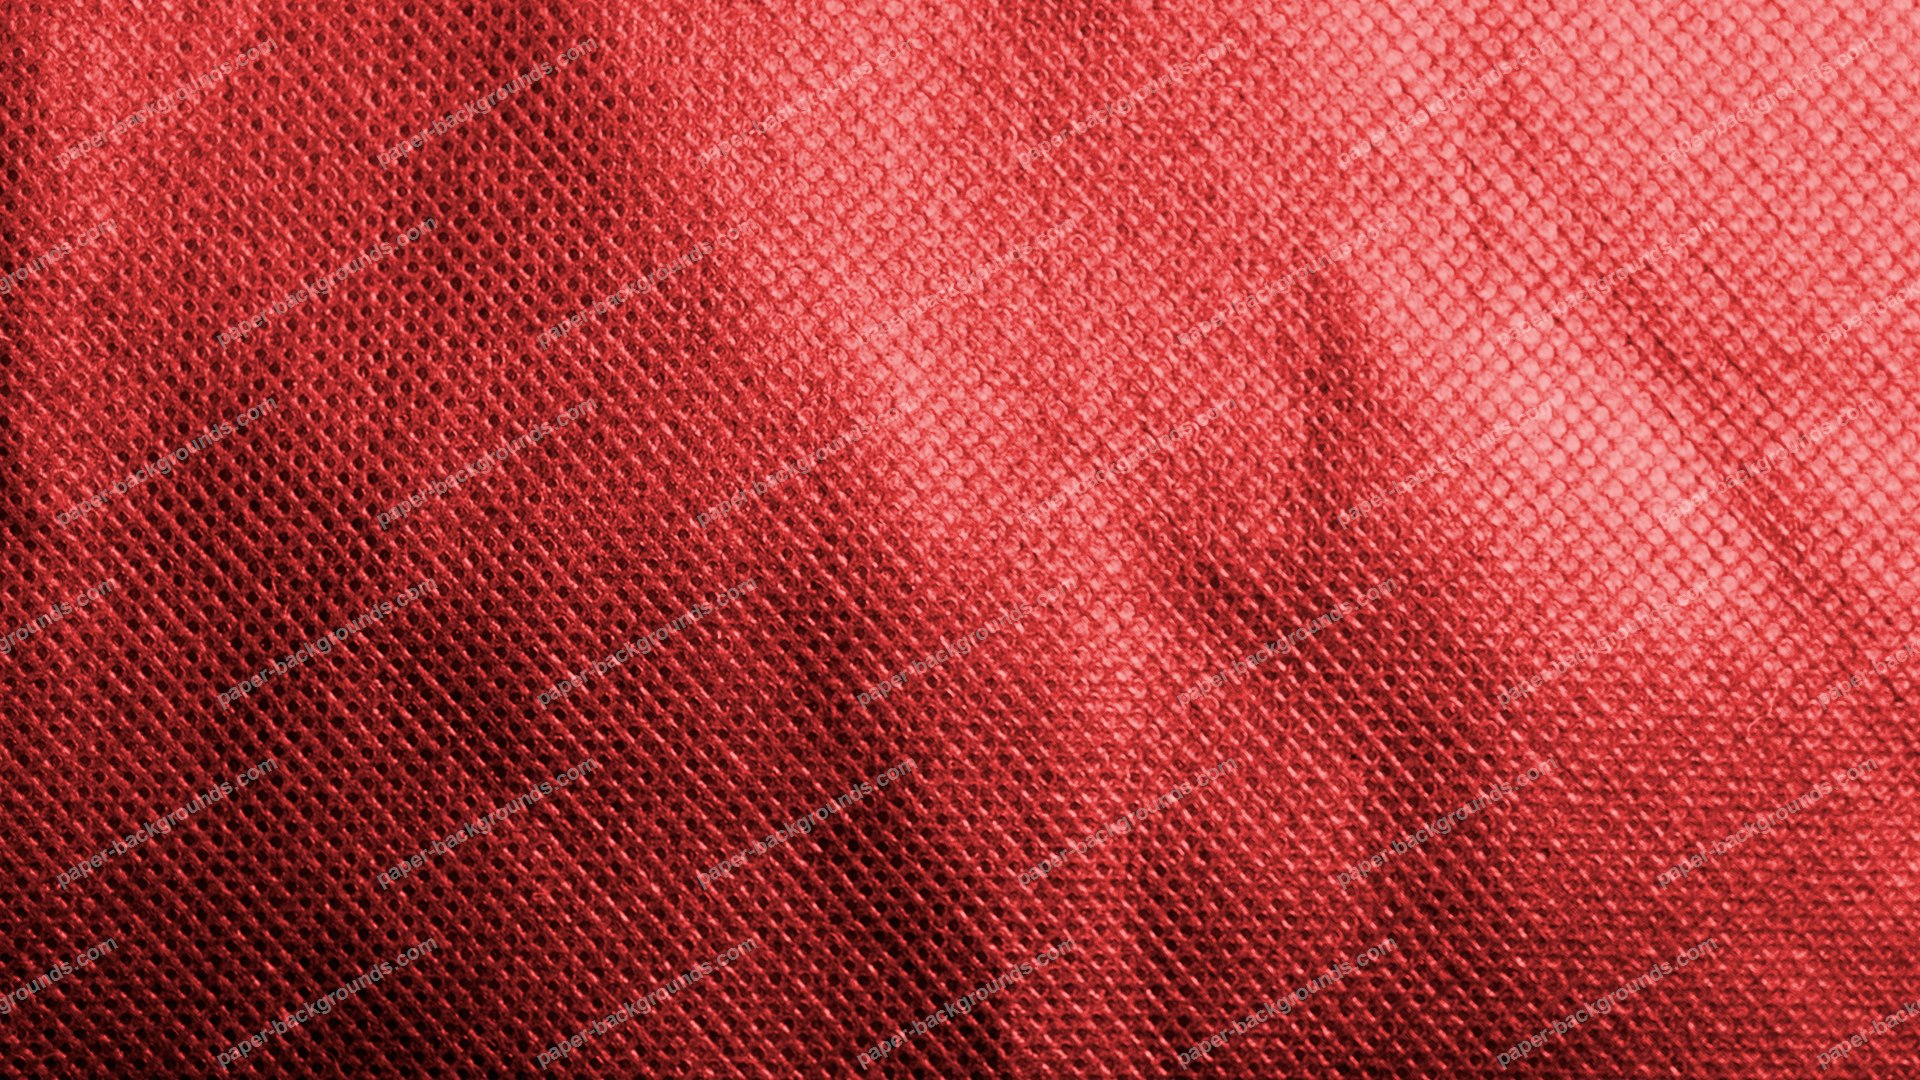 Red Fabric Material With Pattern HD 1920 x 1080p